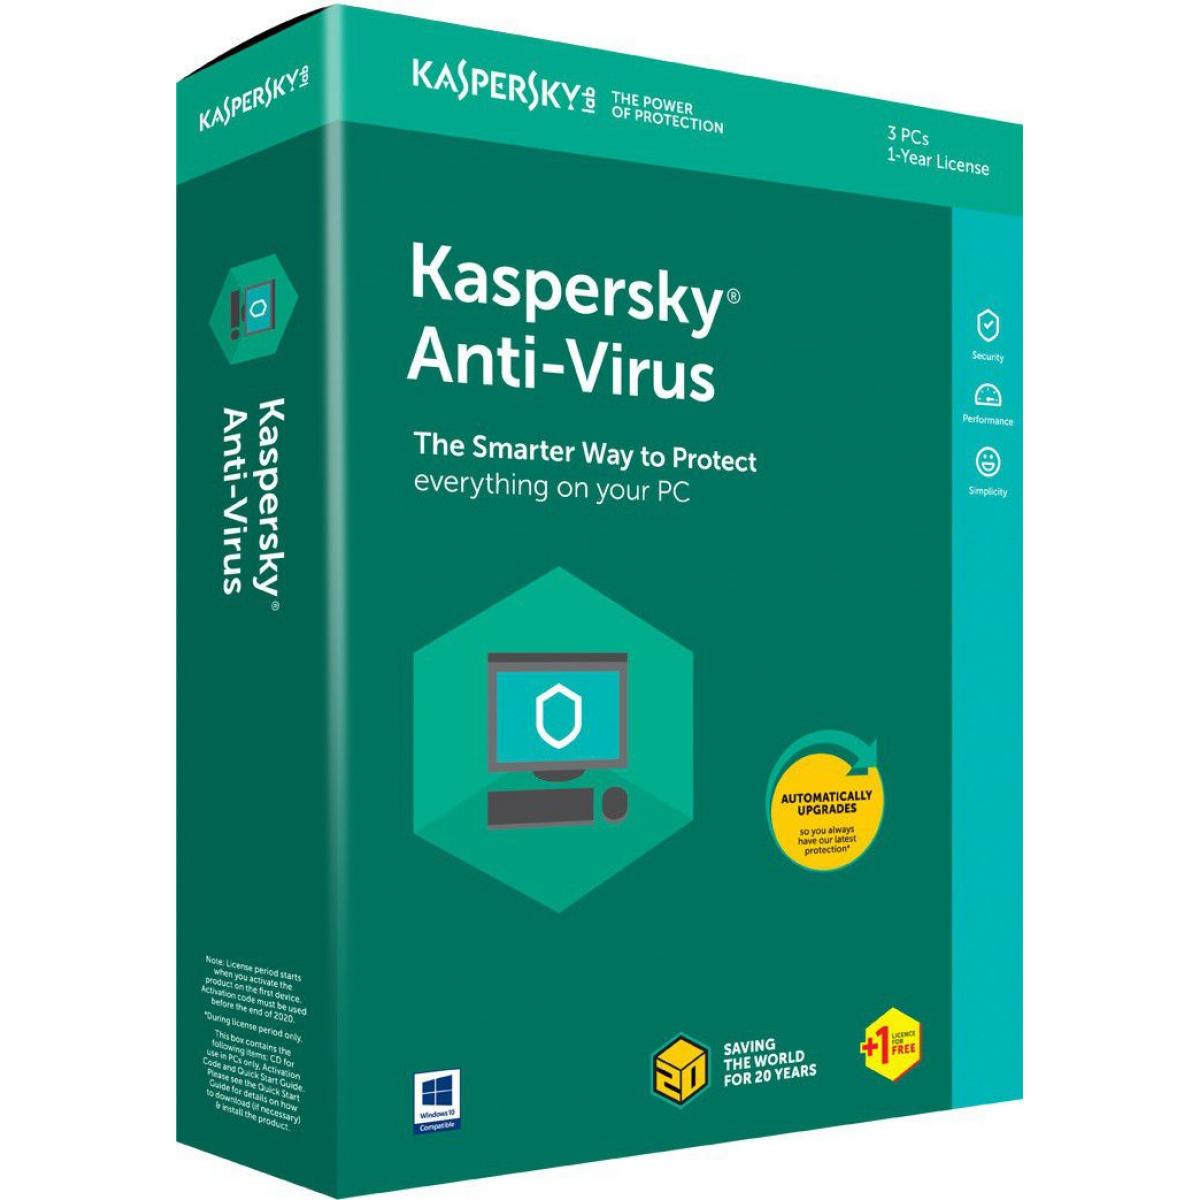 Kaspersky Anti-Virus (2016)